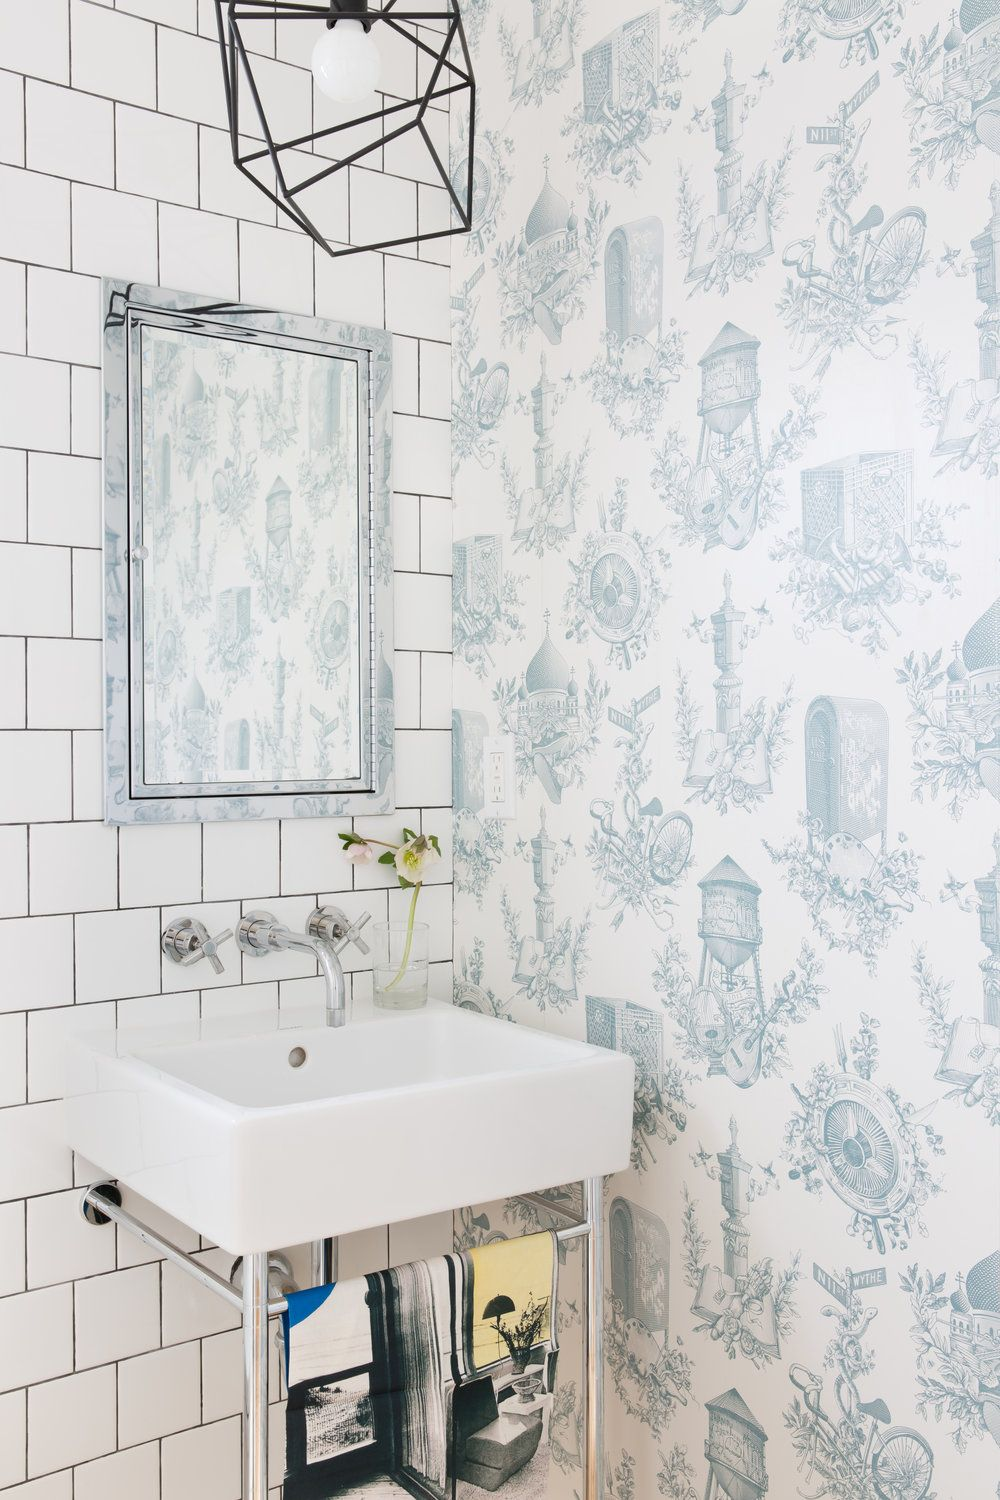 30 Bathroom Decorating Ideas On A Budget Chic And Affordable Bathroom Decor